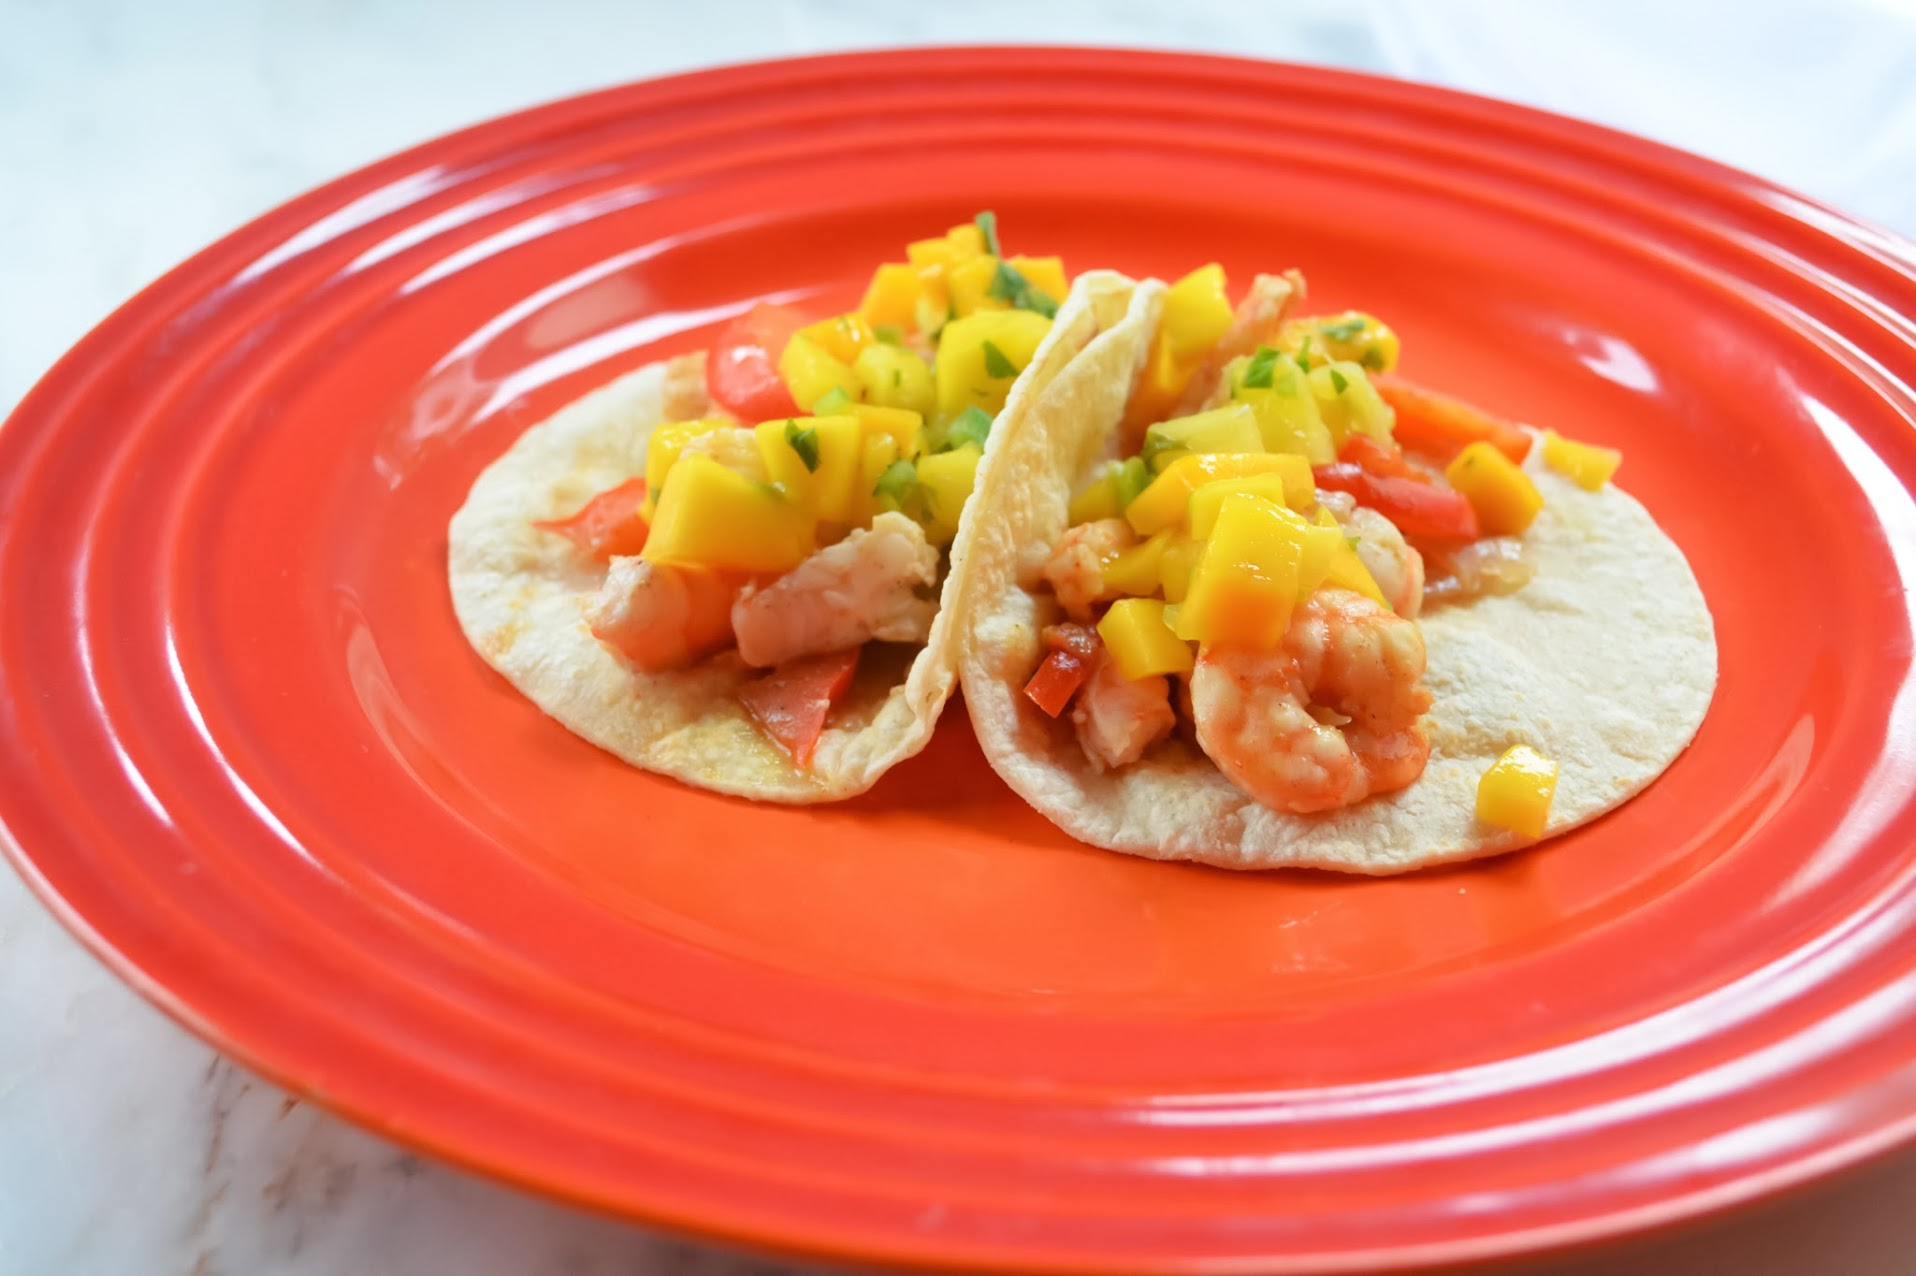 Quick-Shrimp-Tacos-With-Pineapple-Mango-Salsa-Corn-Tortilla.jpg